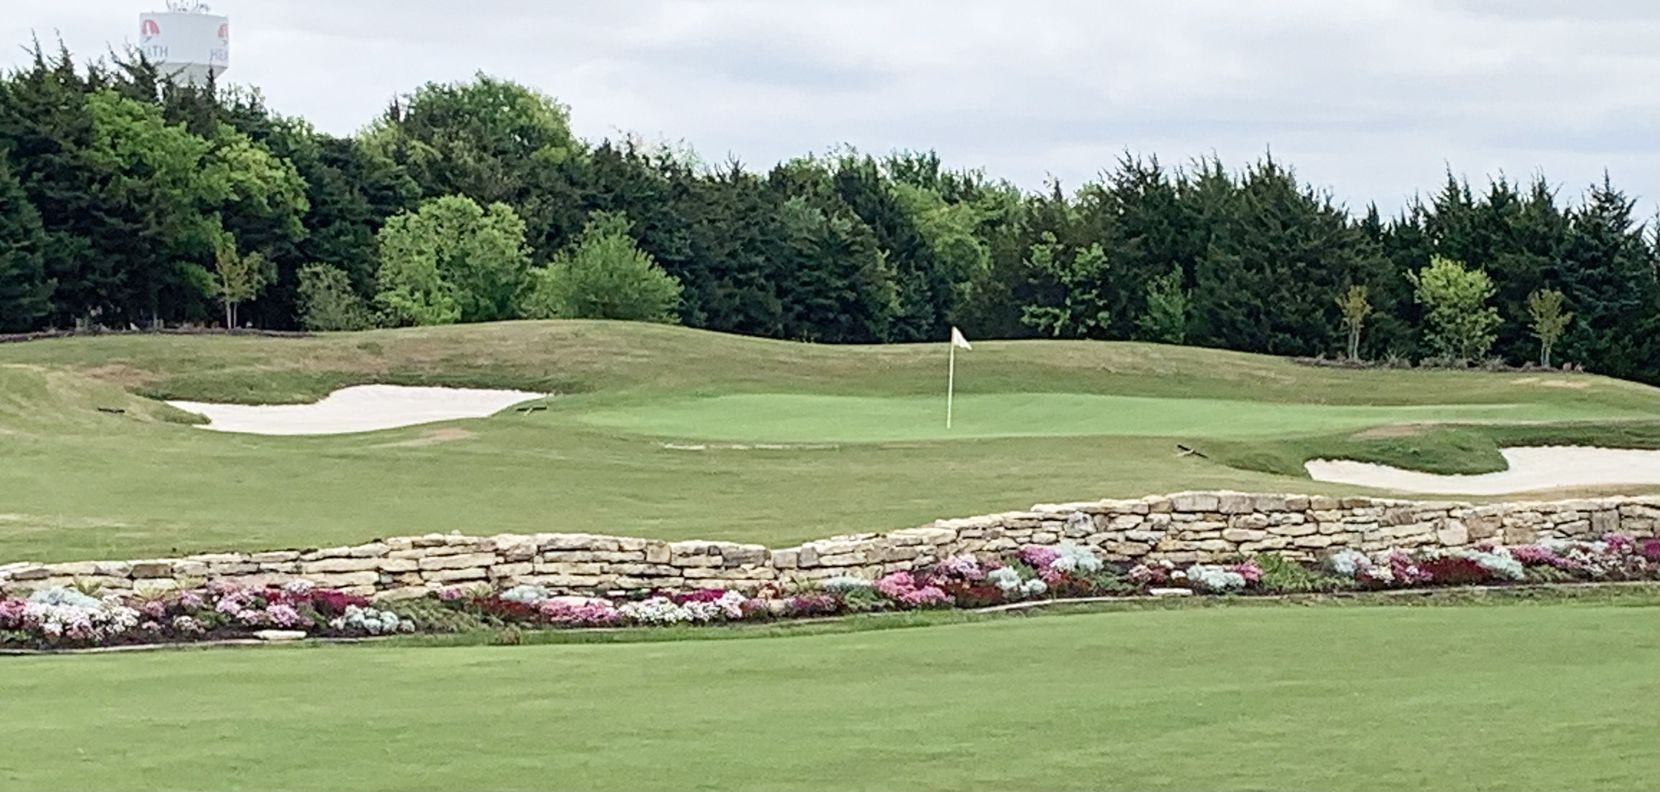 No. 5 at Heath Golf and Yacht Club in Heath, Texas, is a 186-yard par 3 from the tips. It features a crossing penalty area with a wall and decorative plants. This is for Texas Golf 2021 on May 9, 2021.